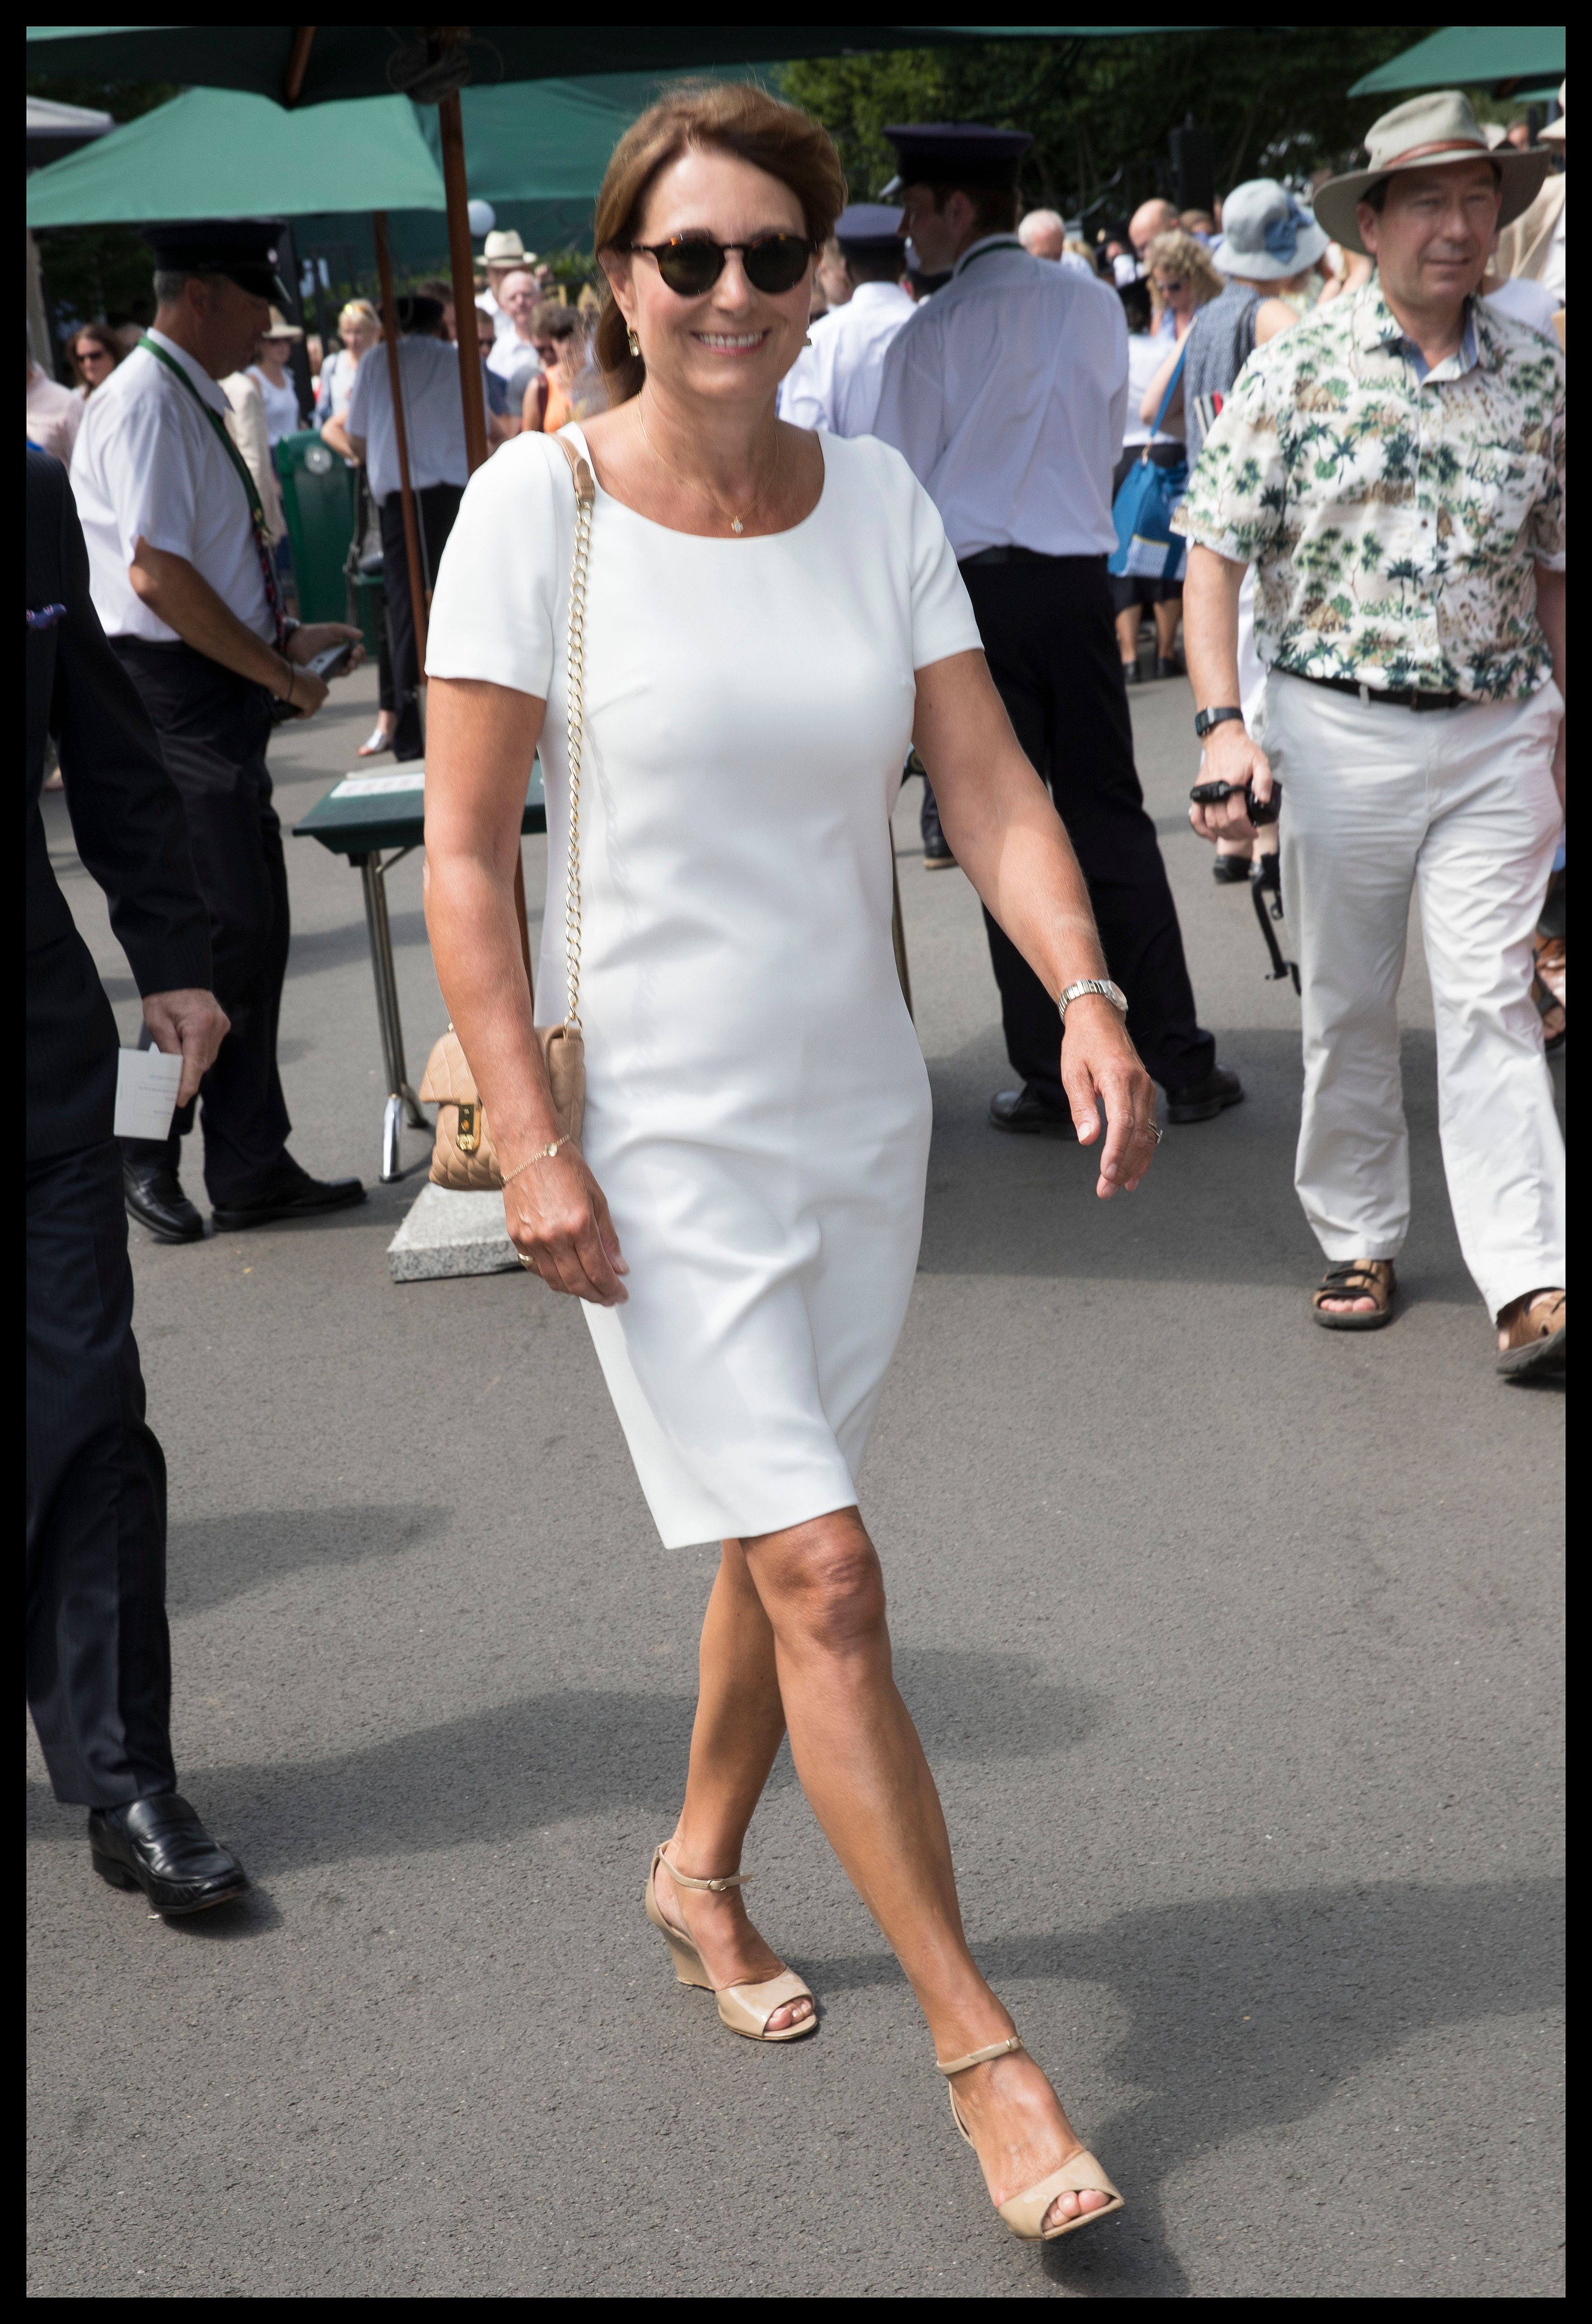 July 6, 2017 - London, London, United Kingdom - Image licensed to i-Images Picture Agency. 06/07/2017. London, United Kingdom. Carole Middleton arriving on day four of the Wimbledon Tennis Championships in London. Picture by Stephen Lock / i-Images, Image: 341021892, License: Rights-managed, Restrictions: * China, France, Italy, Spain, Taiwan and UK Rights OUT *, Model Release: no, Credit line: Profimedia, Zuma Press - Entertaiment